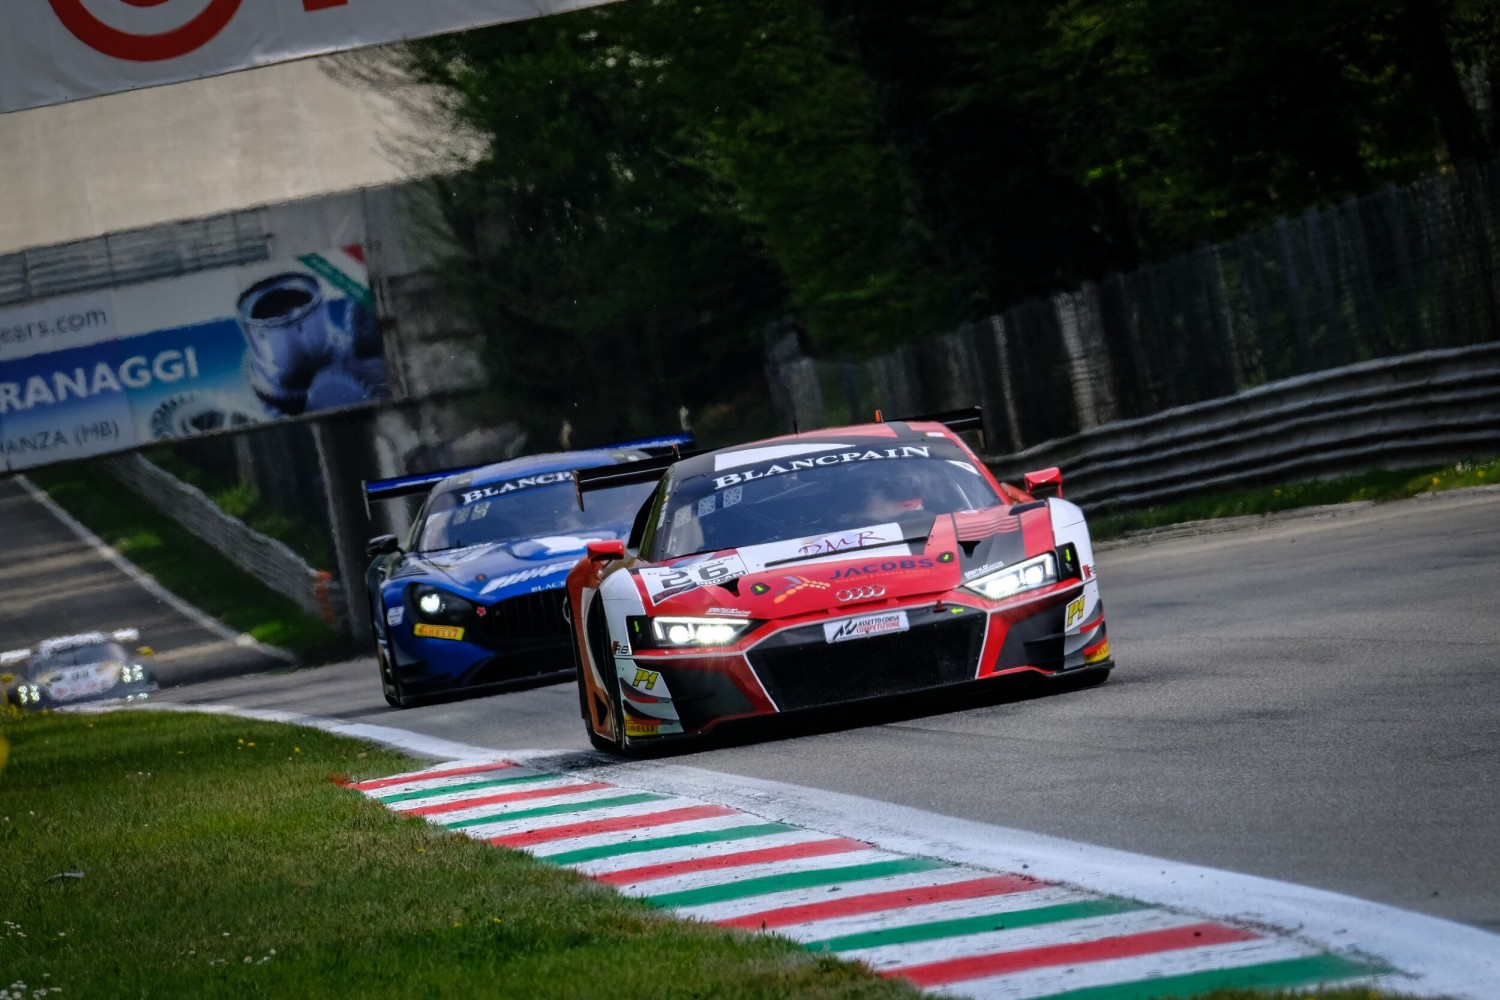 Sainteloc-Audi on top in opening Blancpain GT Series practice at Monza